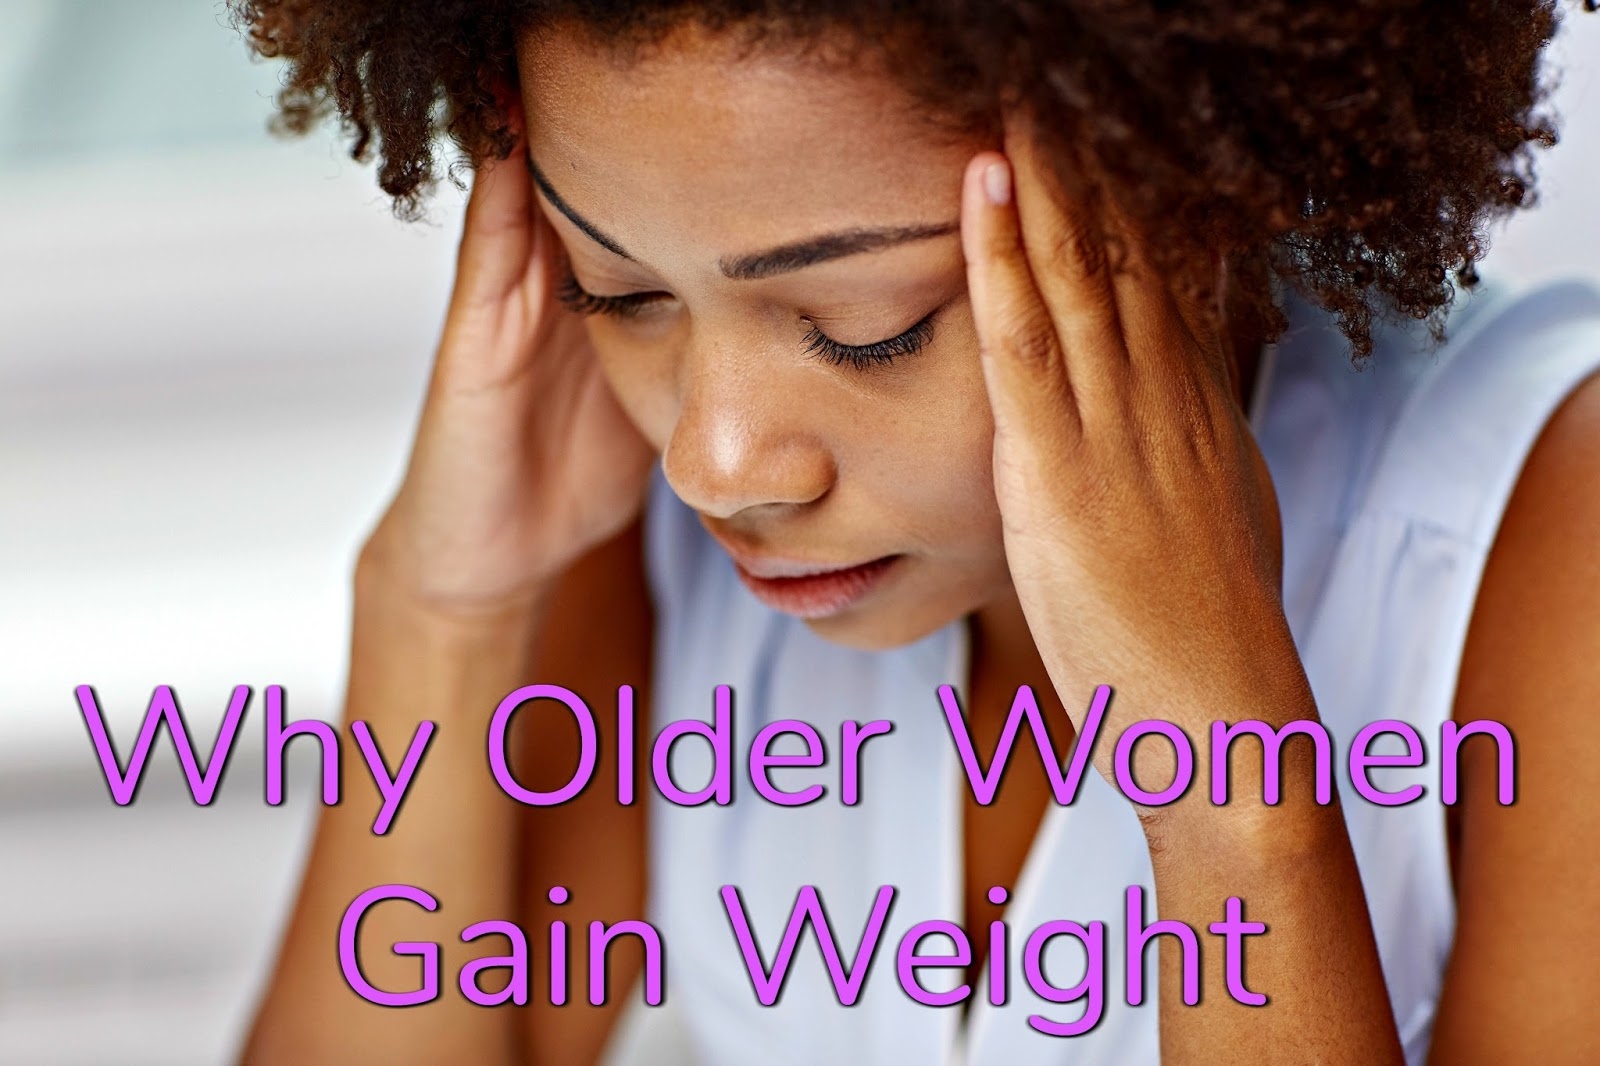 Losing weight is hard and older women are finding themselves gaining weight even when they diet. Older women weight loss is a real problem but we have help.